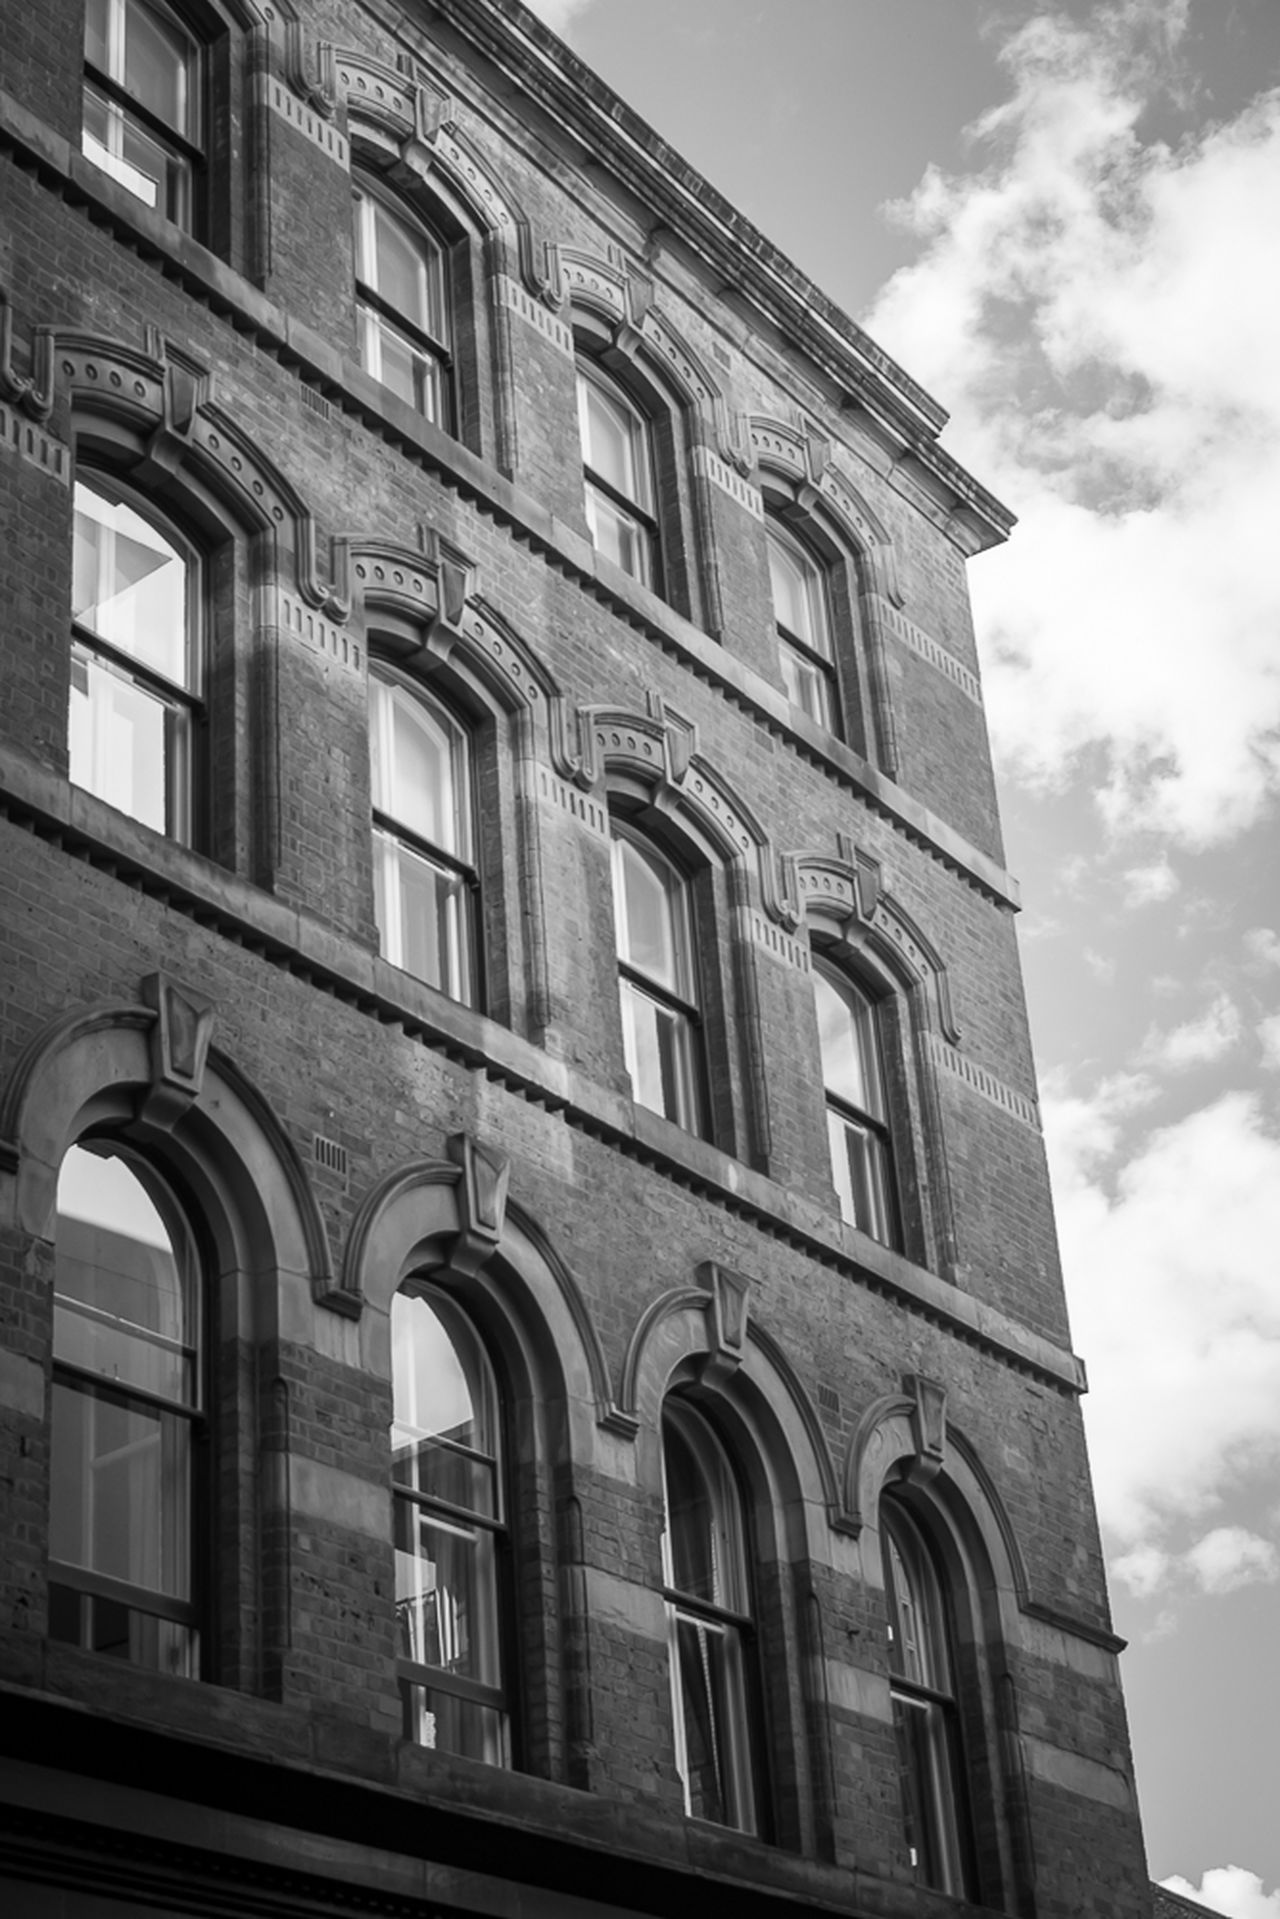 Architecture Built Structure Building Exterior History Travel Destinations Outdoors Sky No People City Balcony Day Streetphotographer Streetphotography_bw Blackandwhite Photography Streetphoto Black And White Blackandwhite Window City Architecture Low Angle View Lookingup